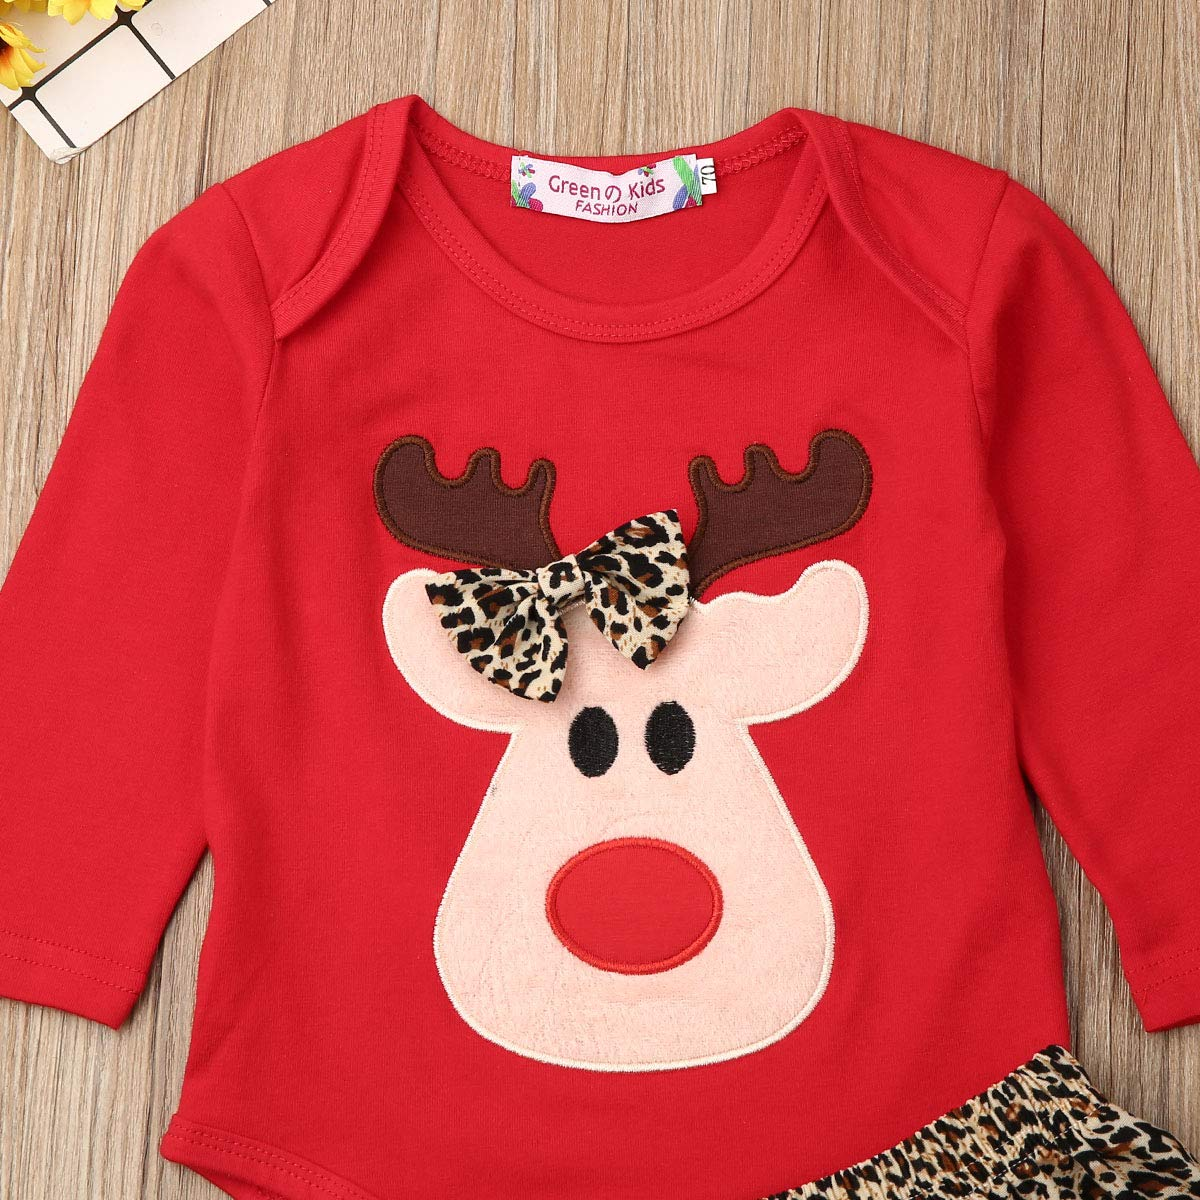 Neugeborene Babies M/ädchen My First Christmas Outfits Tutu Prinzessin Strampler Cartoon Hirsch Tops Leopard Mini Rock